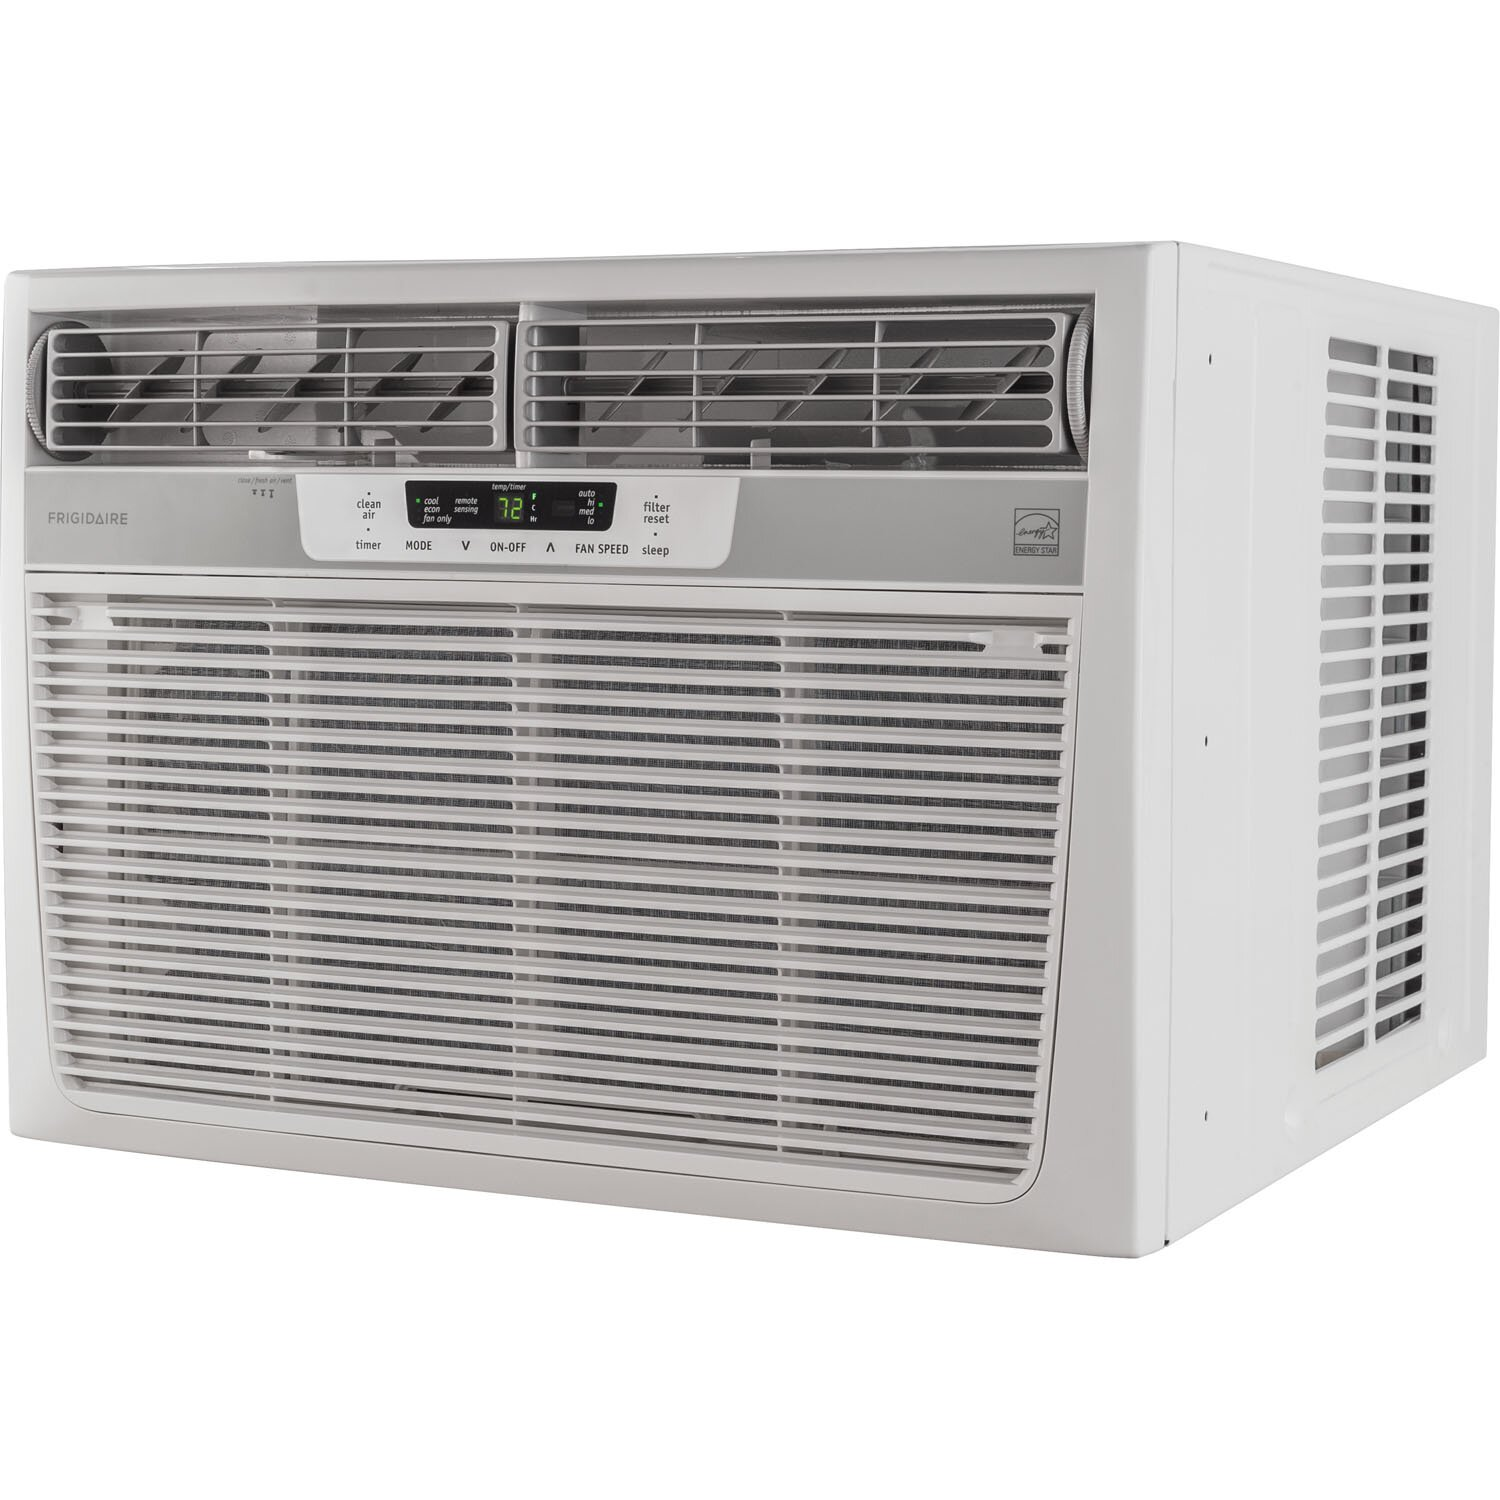 #4E6439 Frigidaire 15 100 BTU Energy Star Window Median Air  Recommended 11977 Frigidaire Window Air Conditioner Remote Control pics with 1500x1500 px on helpvideos.info - Air Conditioners, Air Coolers and more